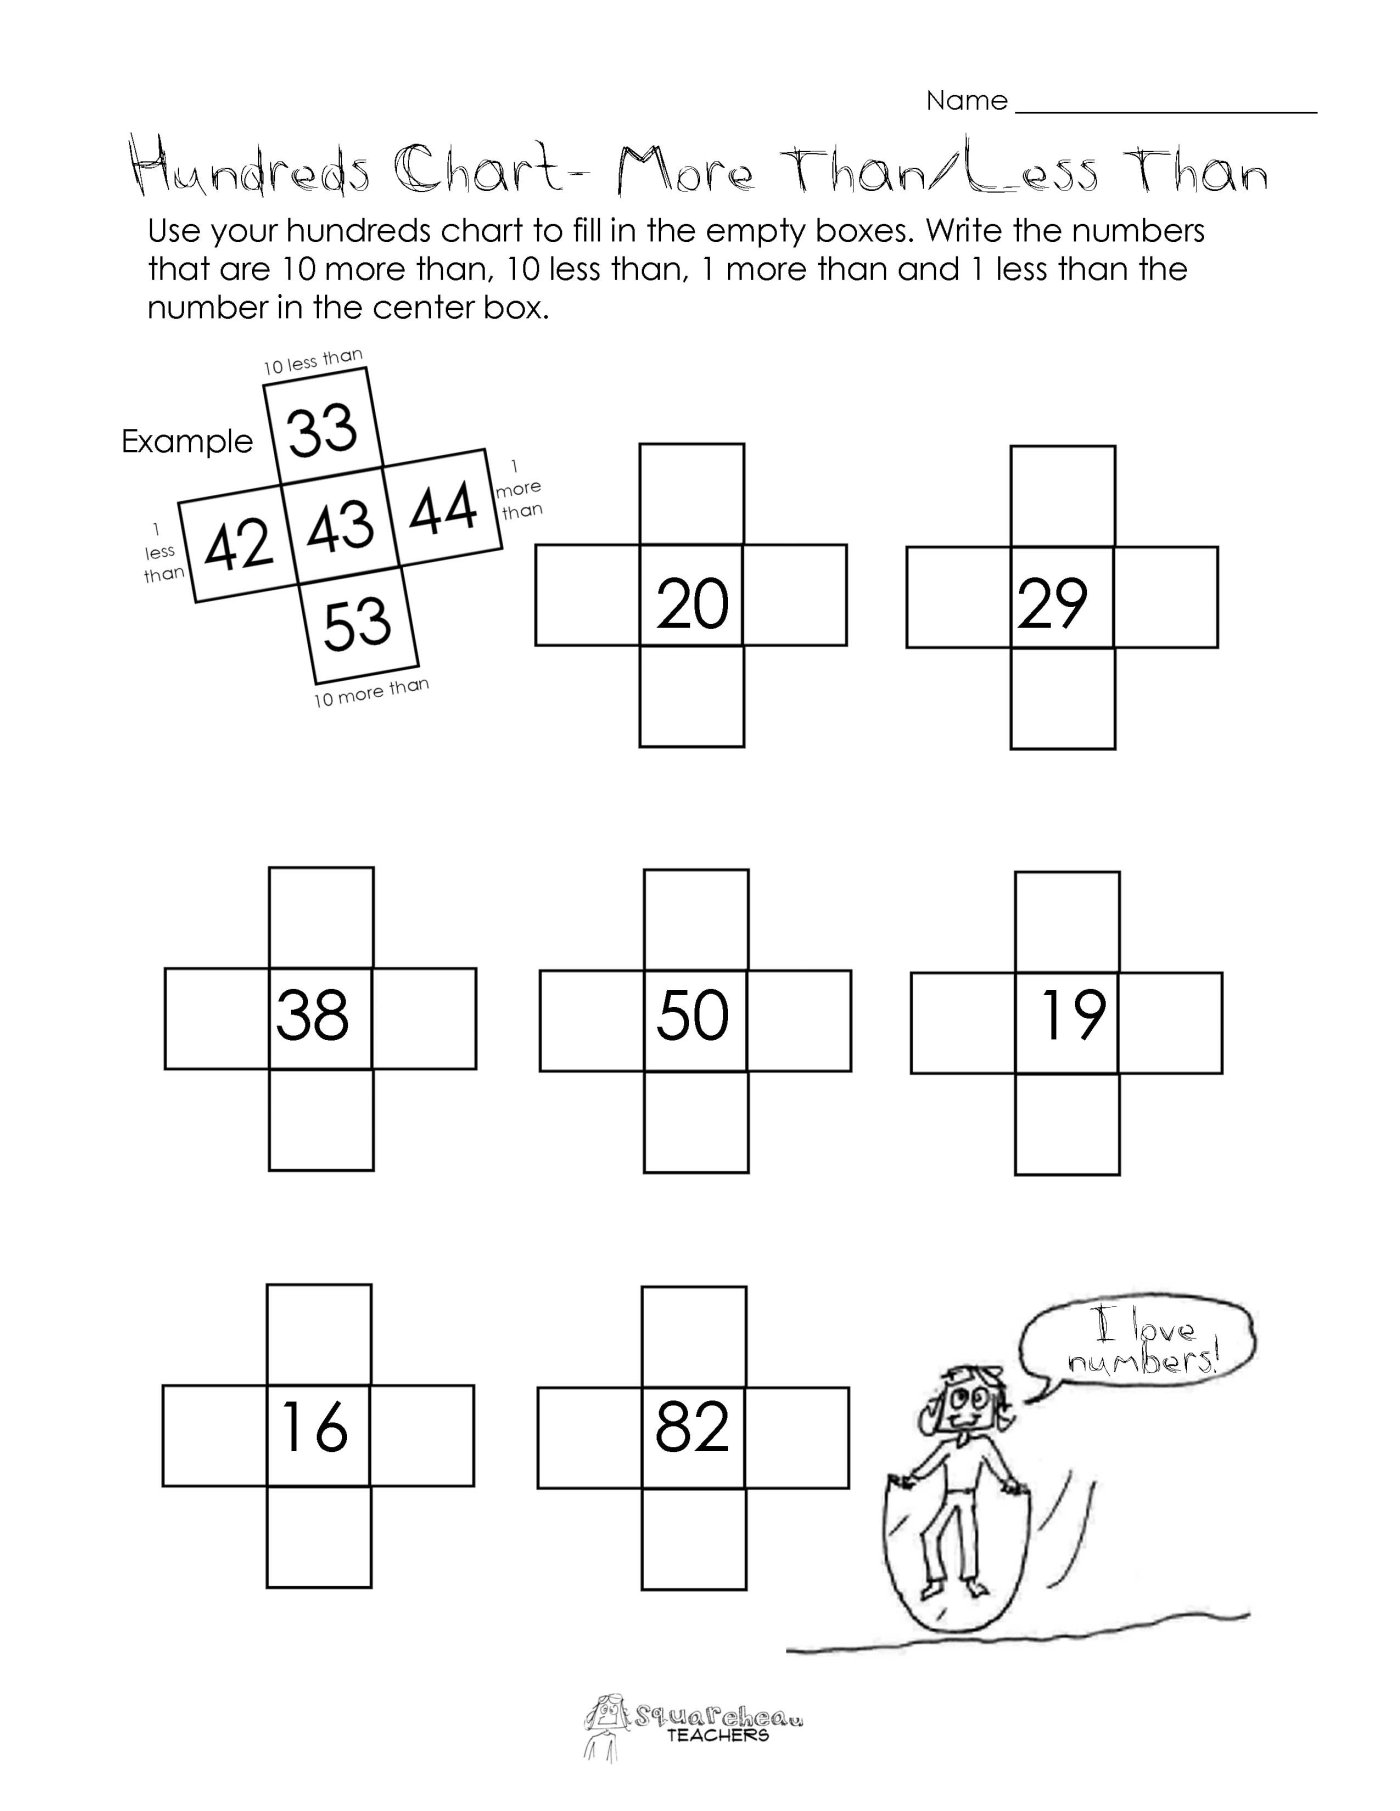 worksheet Greater Than Less Than Fractions Worksheets 10 more than10 less than hundreds chart worksheet squarehead teachers